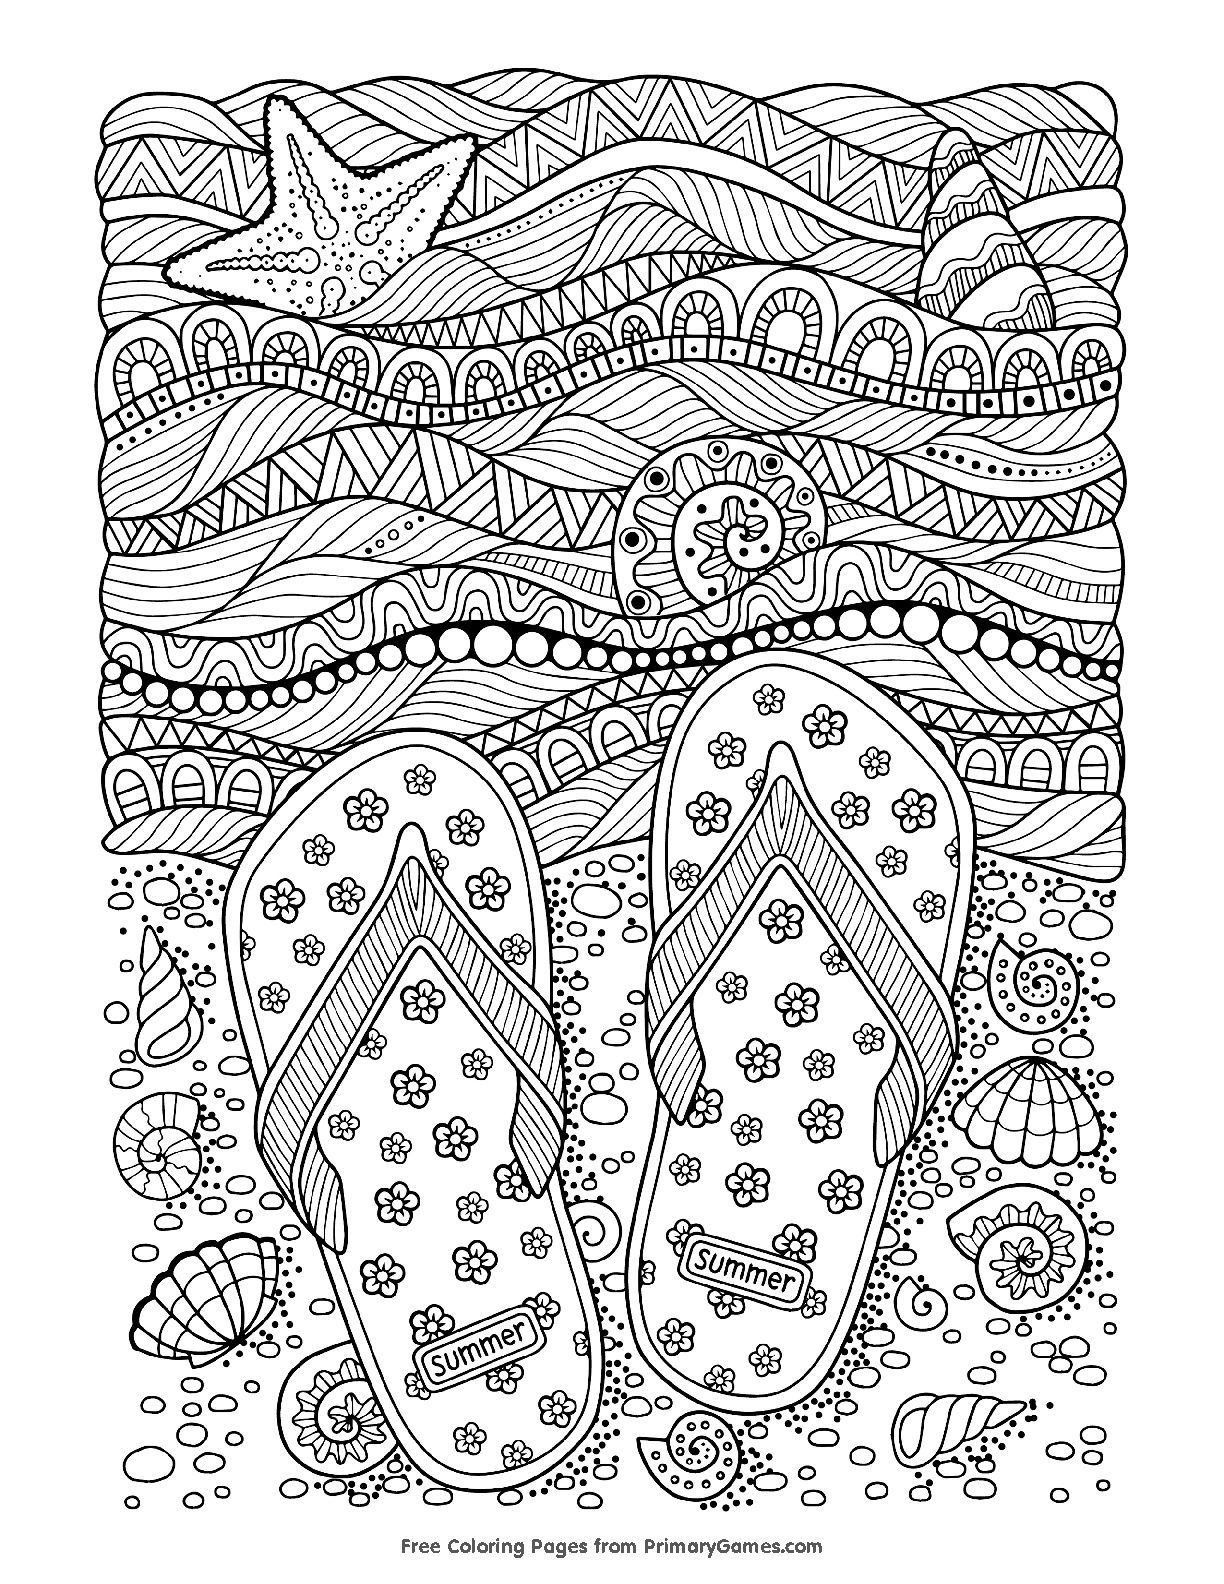 Kid Coloring Page Summer Coloriage Summer Coloring Pages Beach Coloring Pages Summer Coloring Sheets